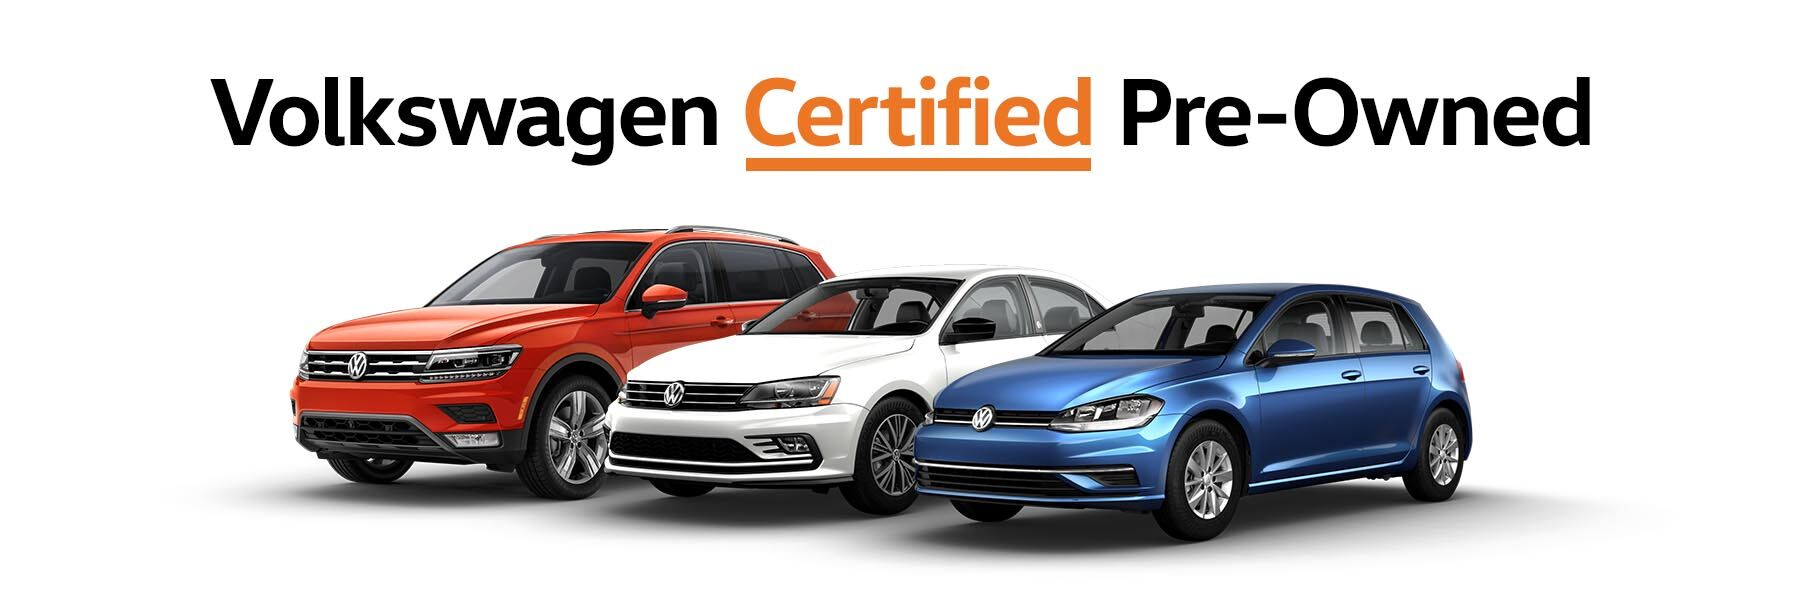 Volkswagen Certified Pre-Owned in Sayville, NY